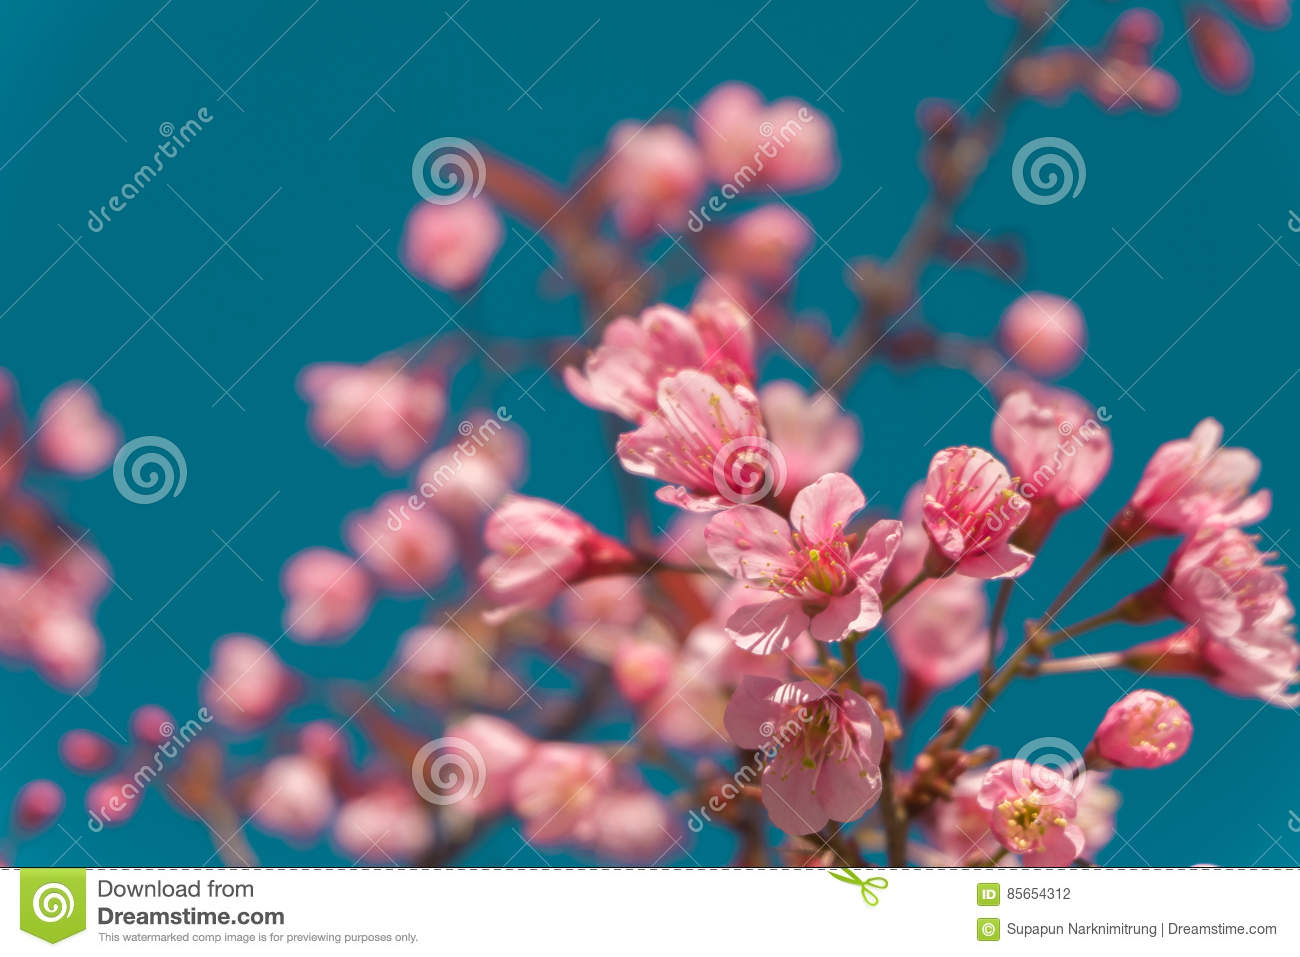 Beautiful Pink white Cherry blossom flowers tree branch in garden with blue sky, Sakura. natural winter spring background.